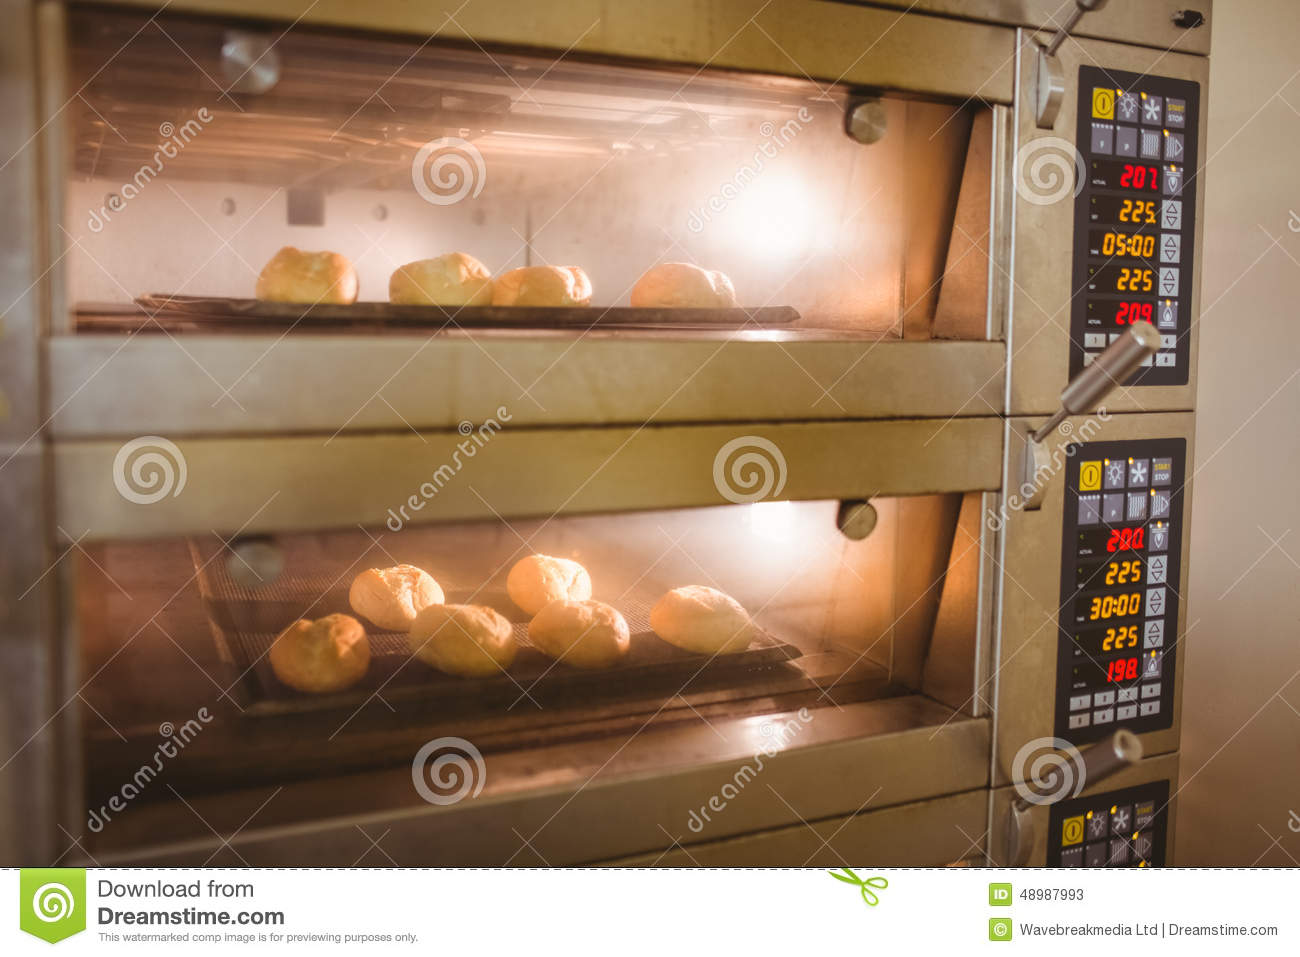 Bread rolls baking in oven stock image. Image of culinary ...